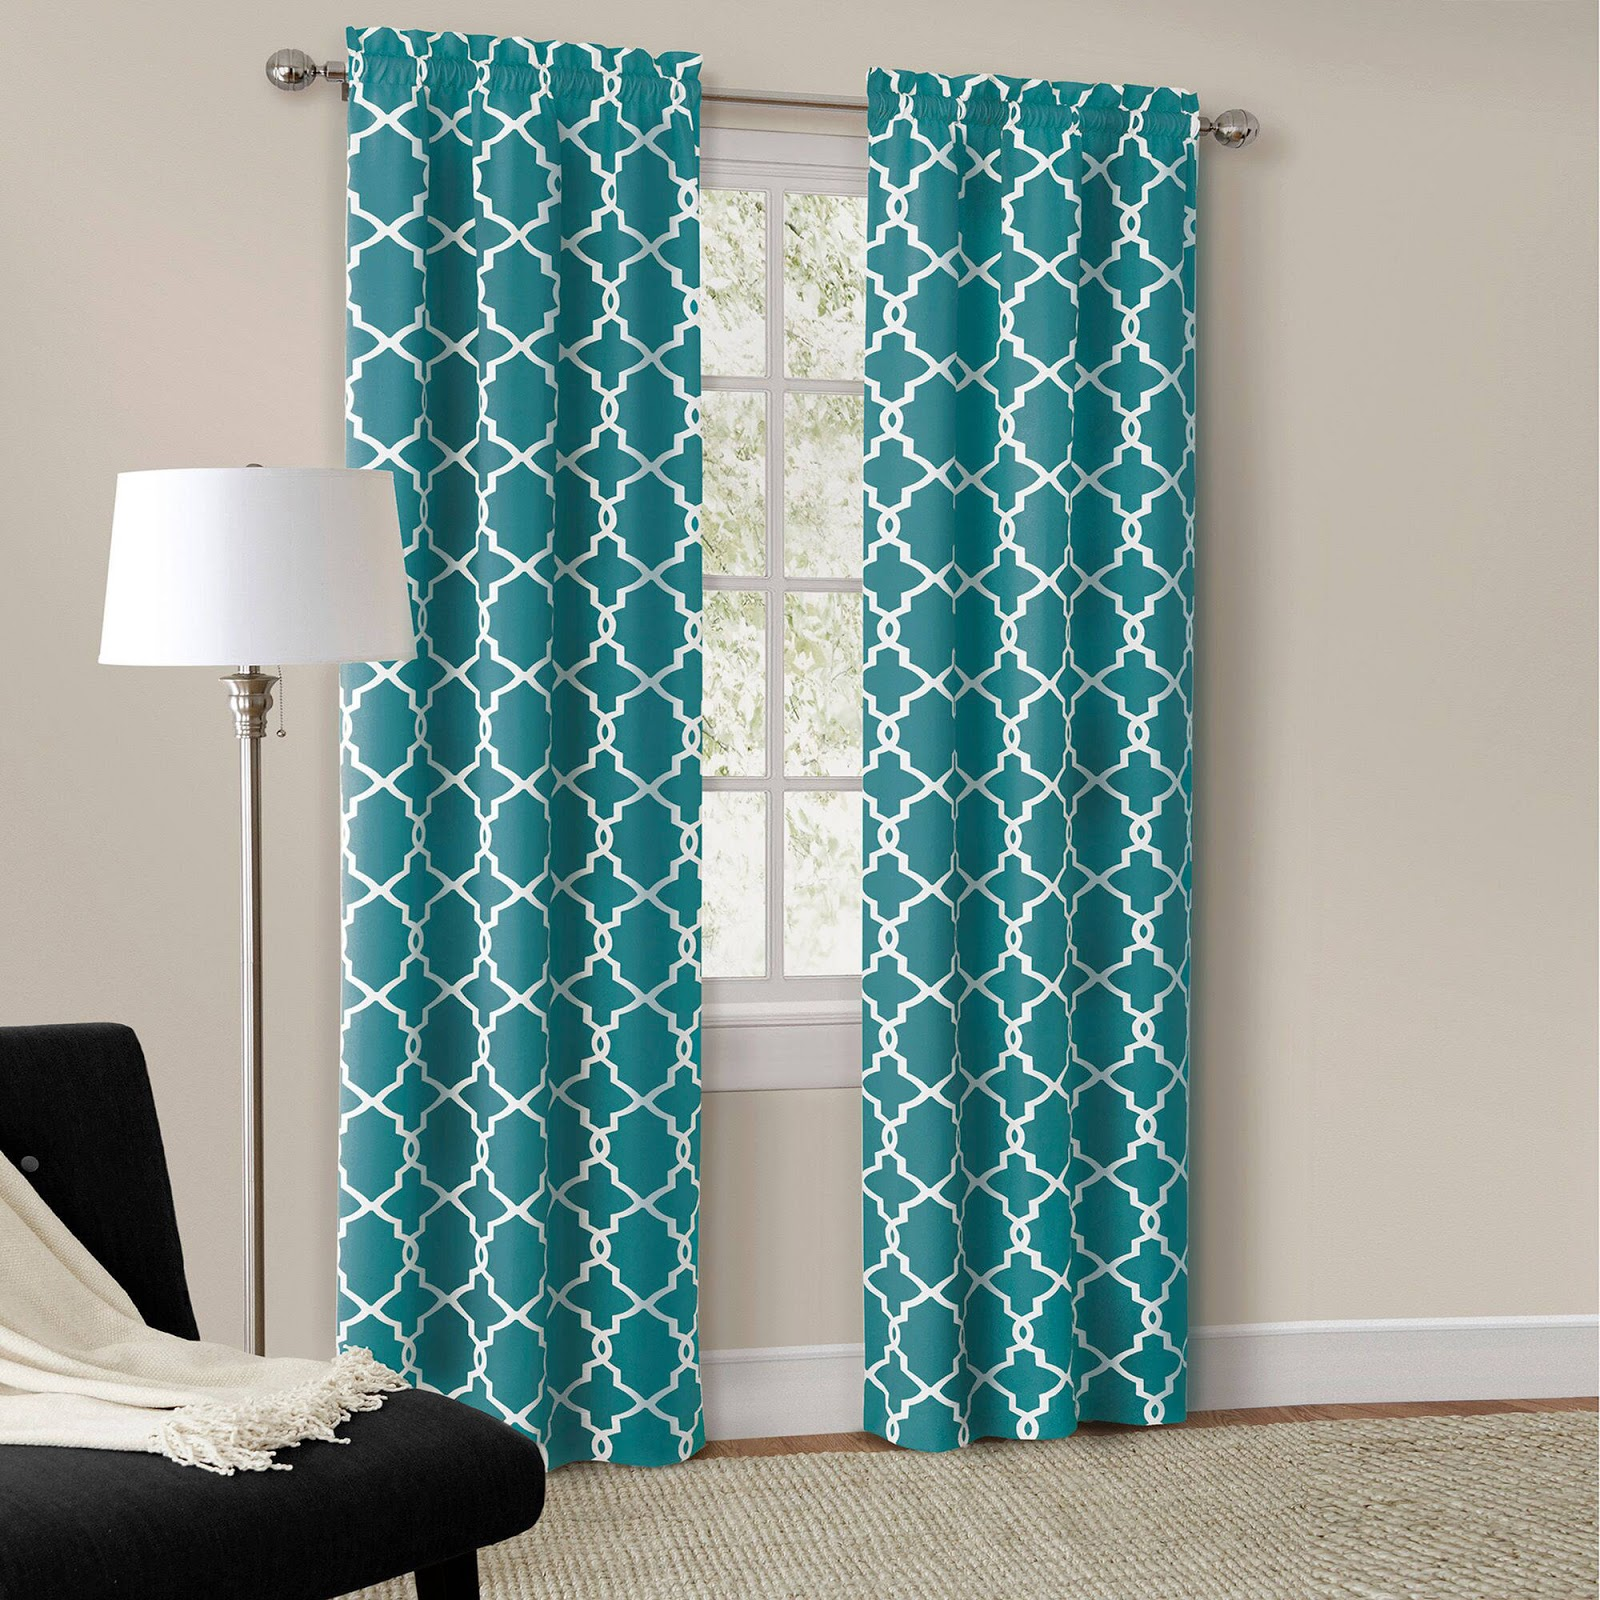 Fabric Types For Curtains Facade Curtain Wall Facebook Shower Faceted Glass System Factory